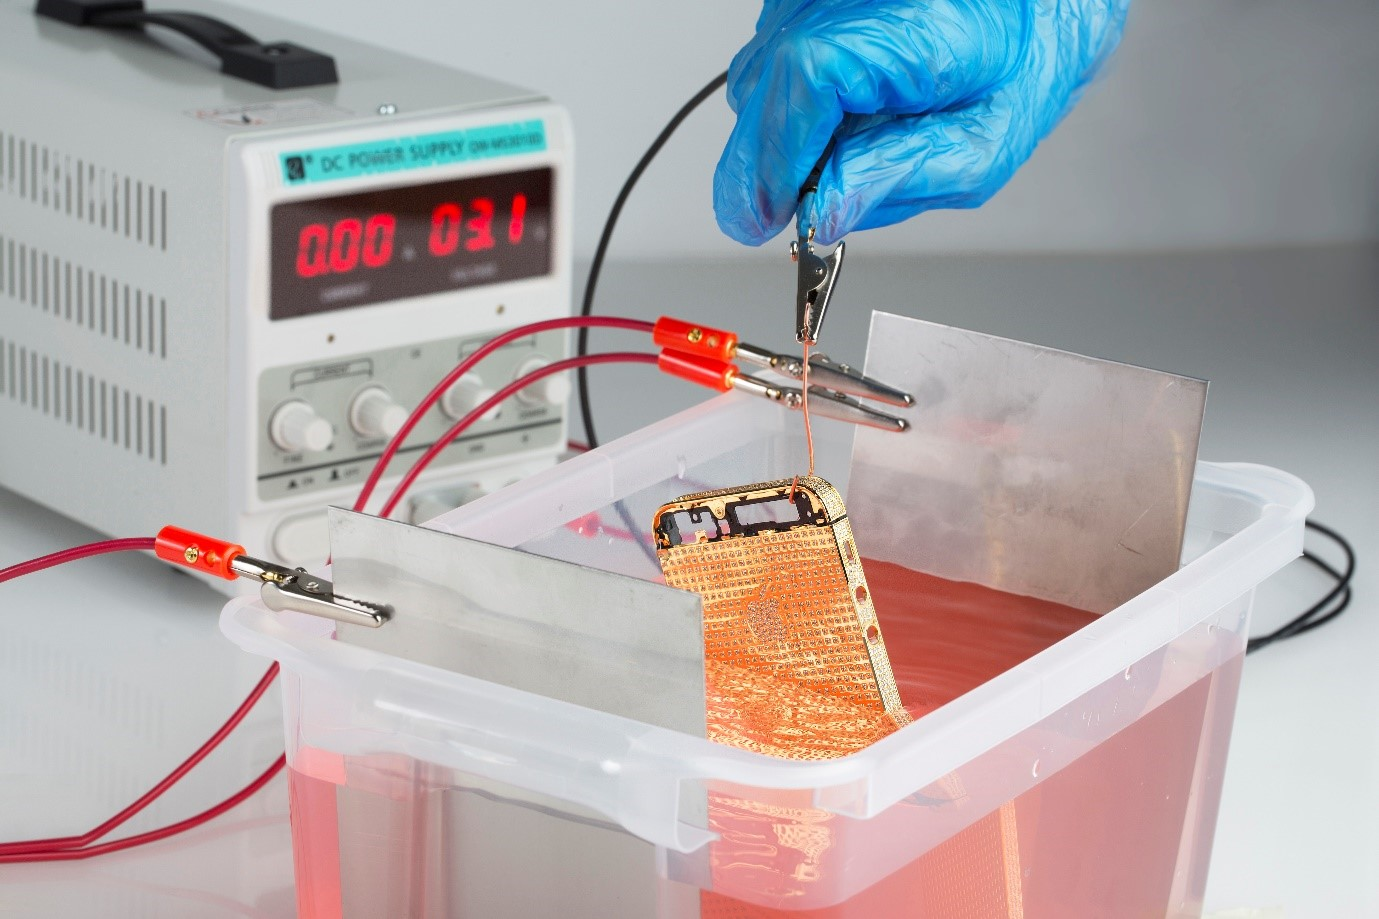 IPhone being gold plated in an electroplating tank